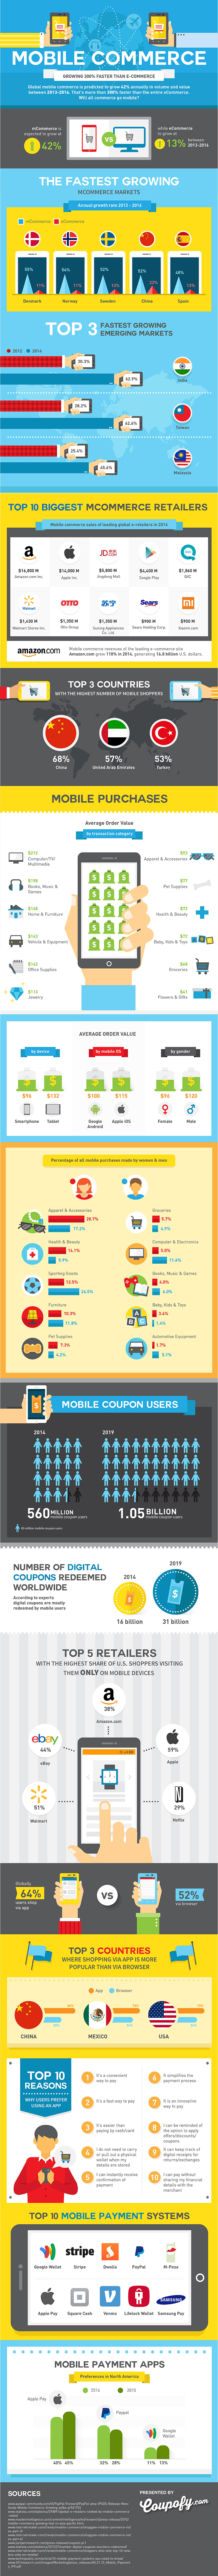 http://www.coupofy.com/blog/mobile-commerce-growing-300-faster-than-ecommerce-infographic